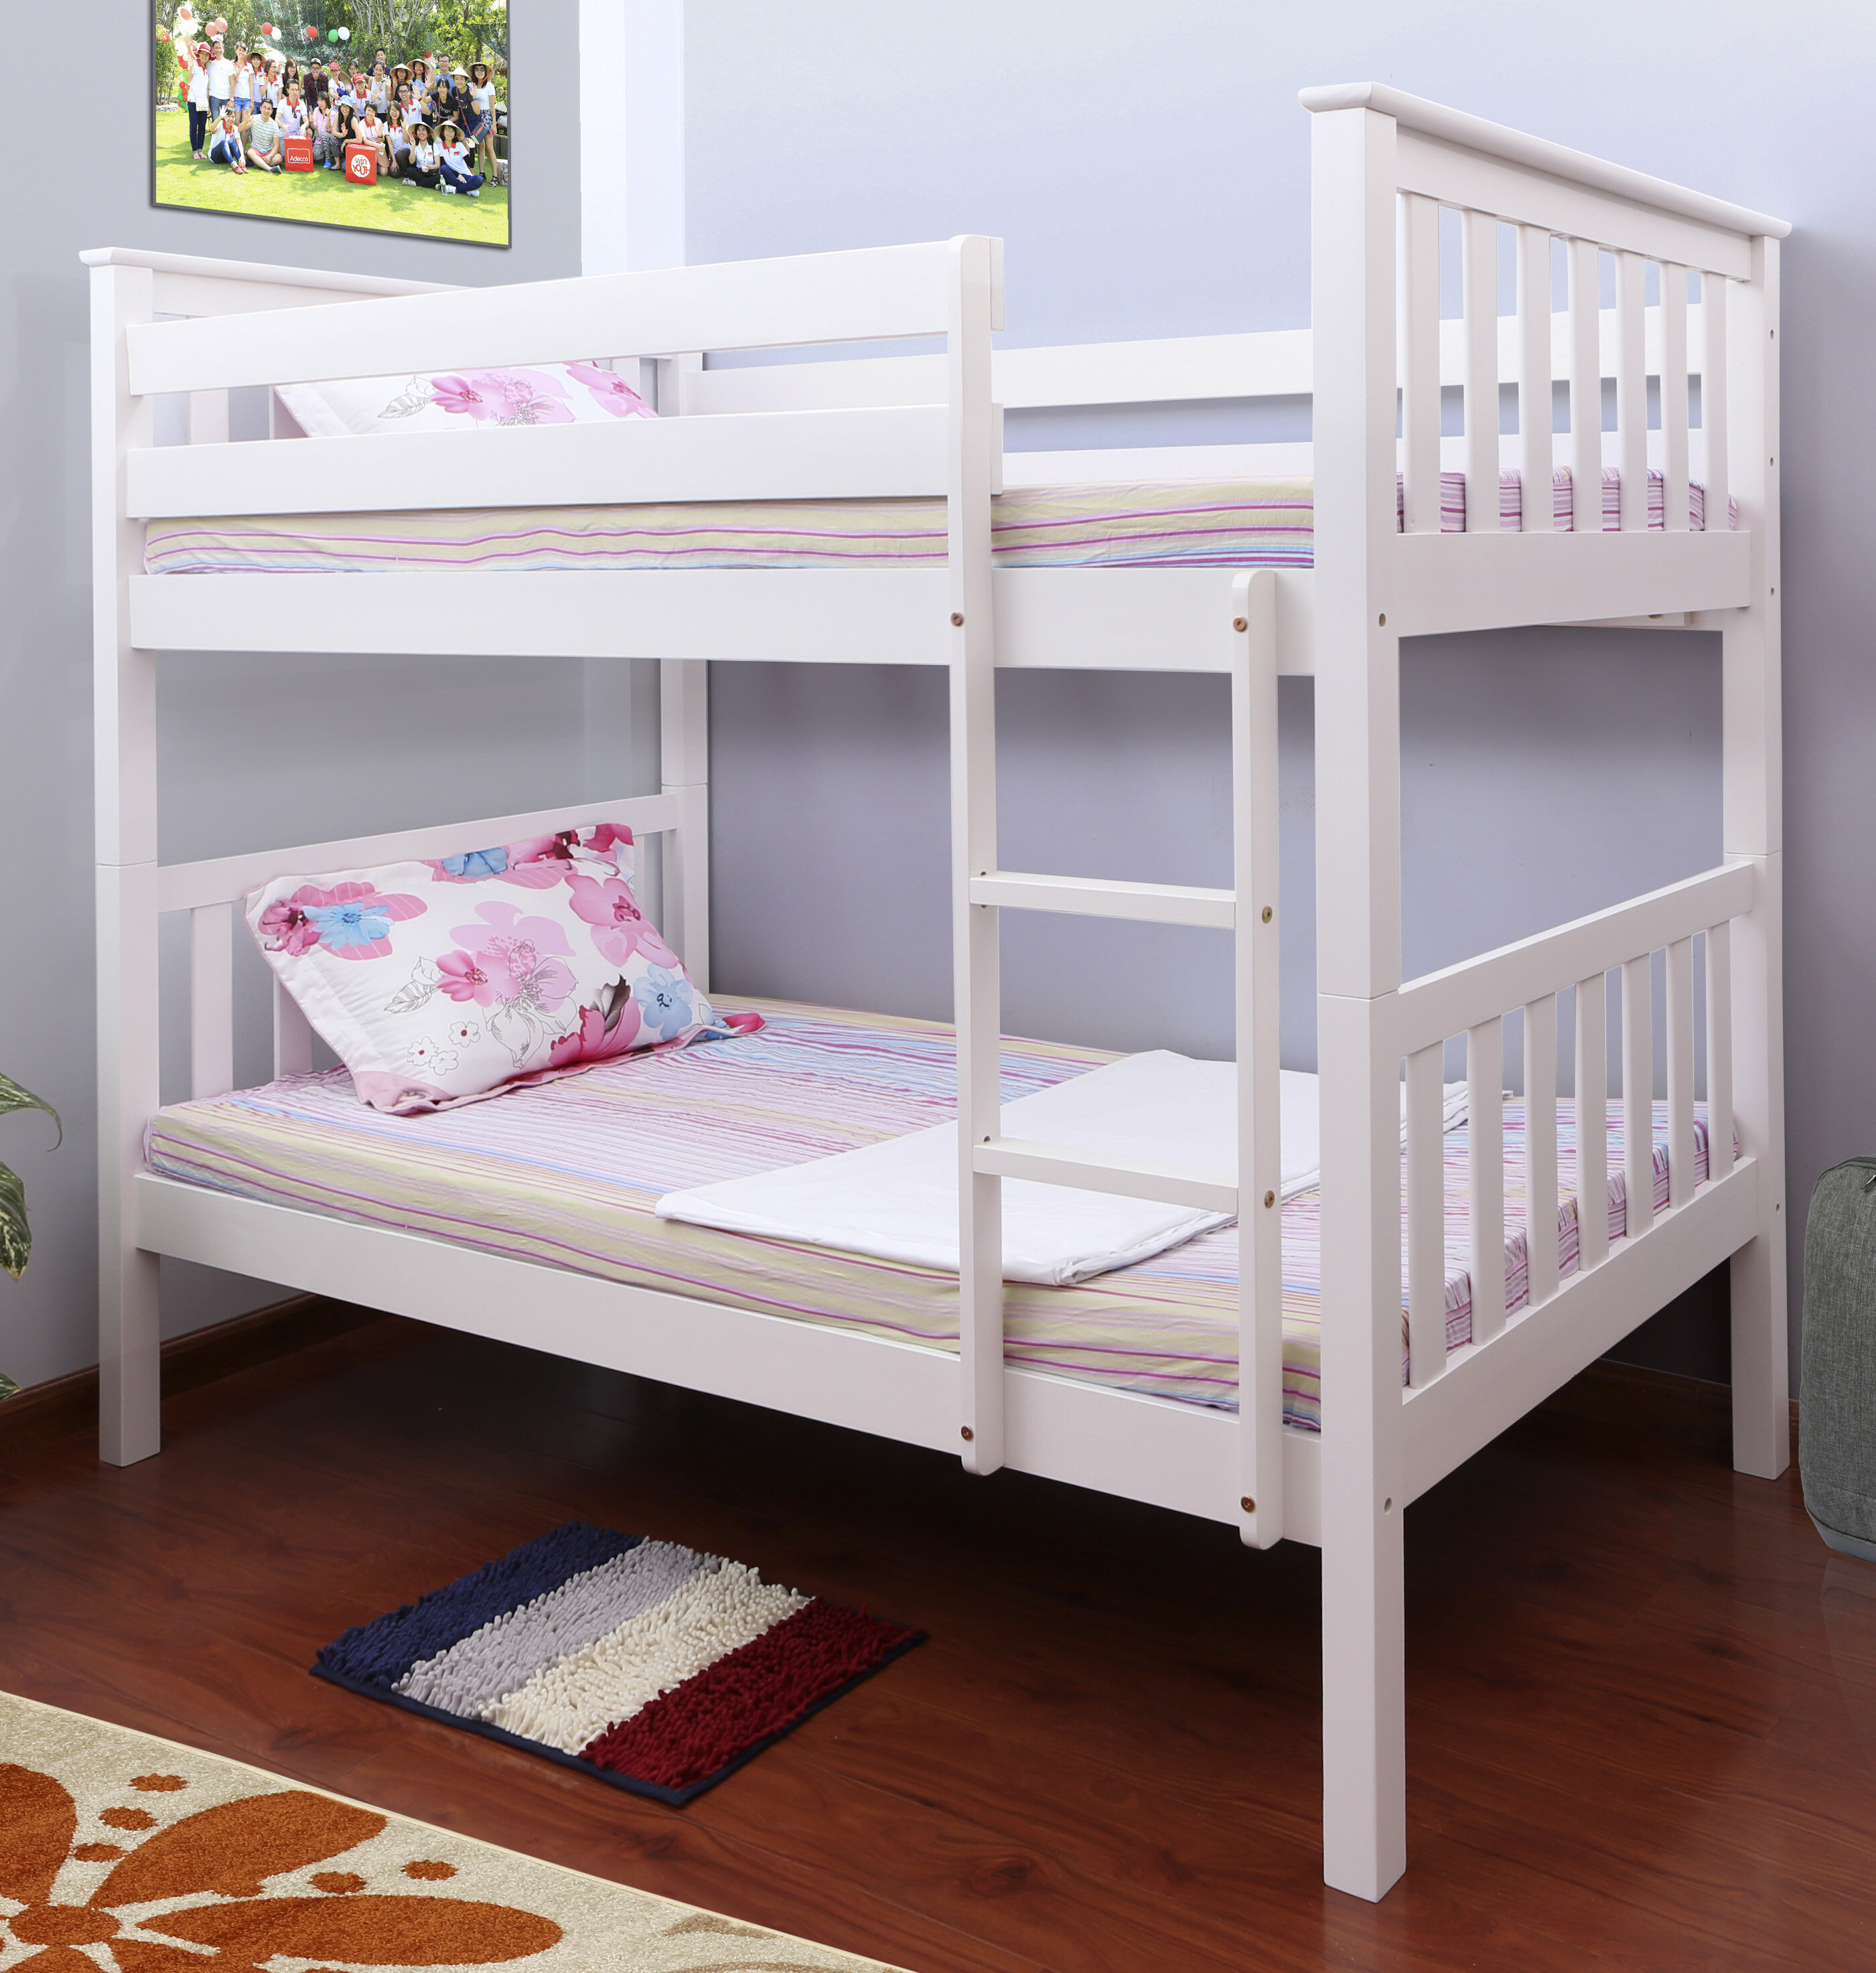 twin to beds old an bunk ceiling transform diy how low bed into